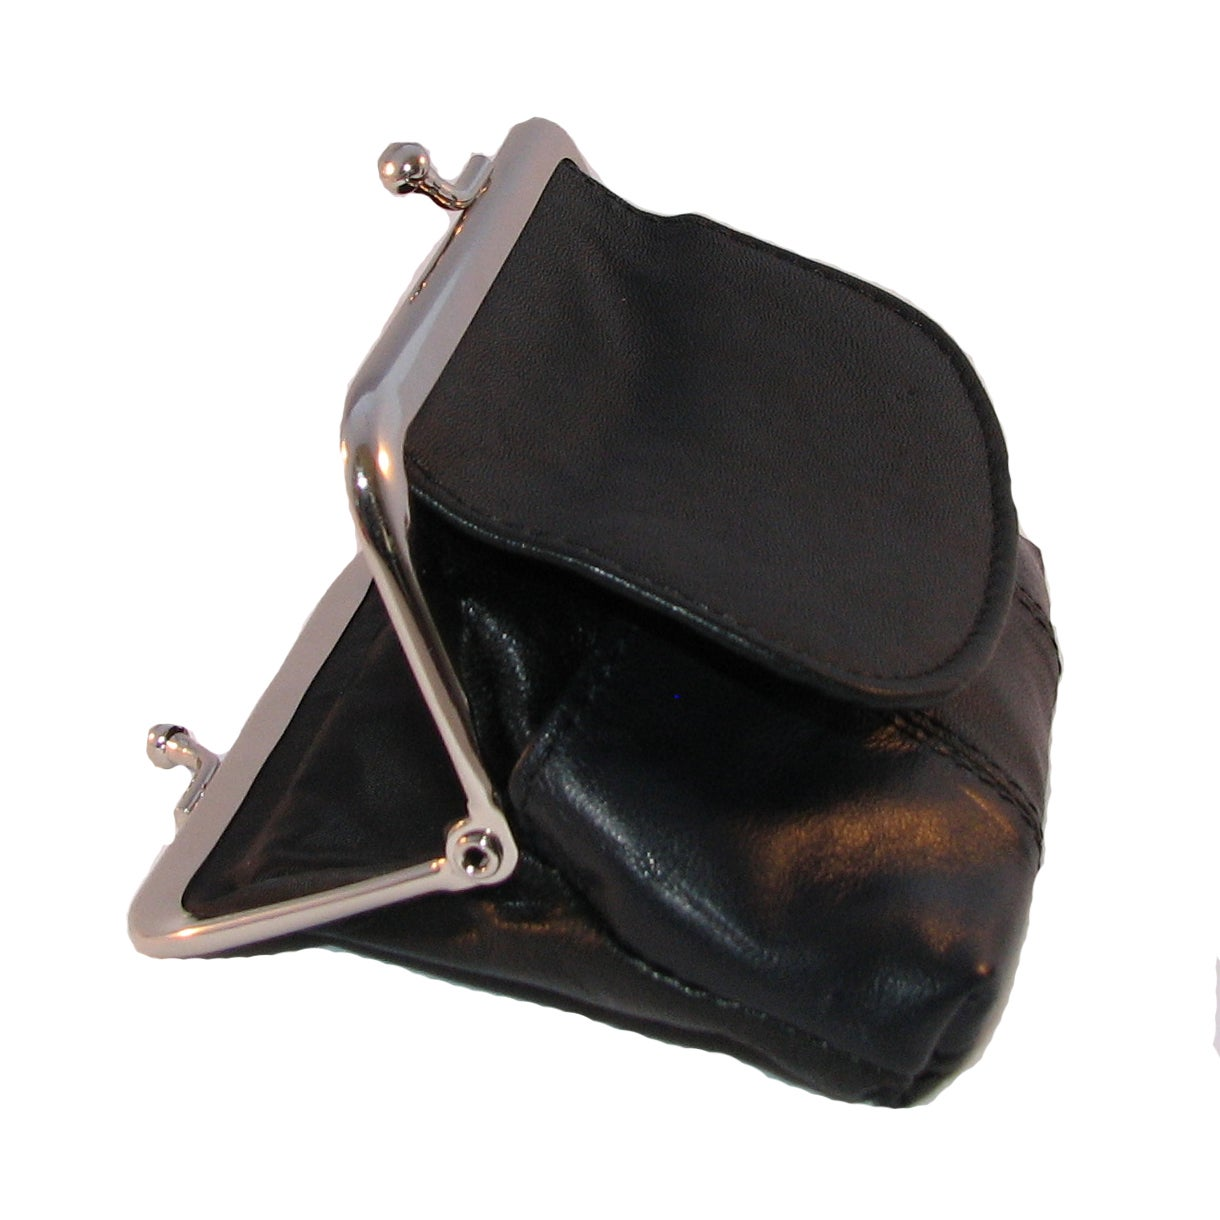 Continental Leather Metal Snap Kiss Lock Frame Coin Purse Free Shipping On Orders Over 45 9792960